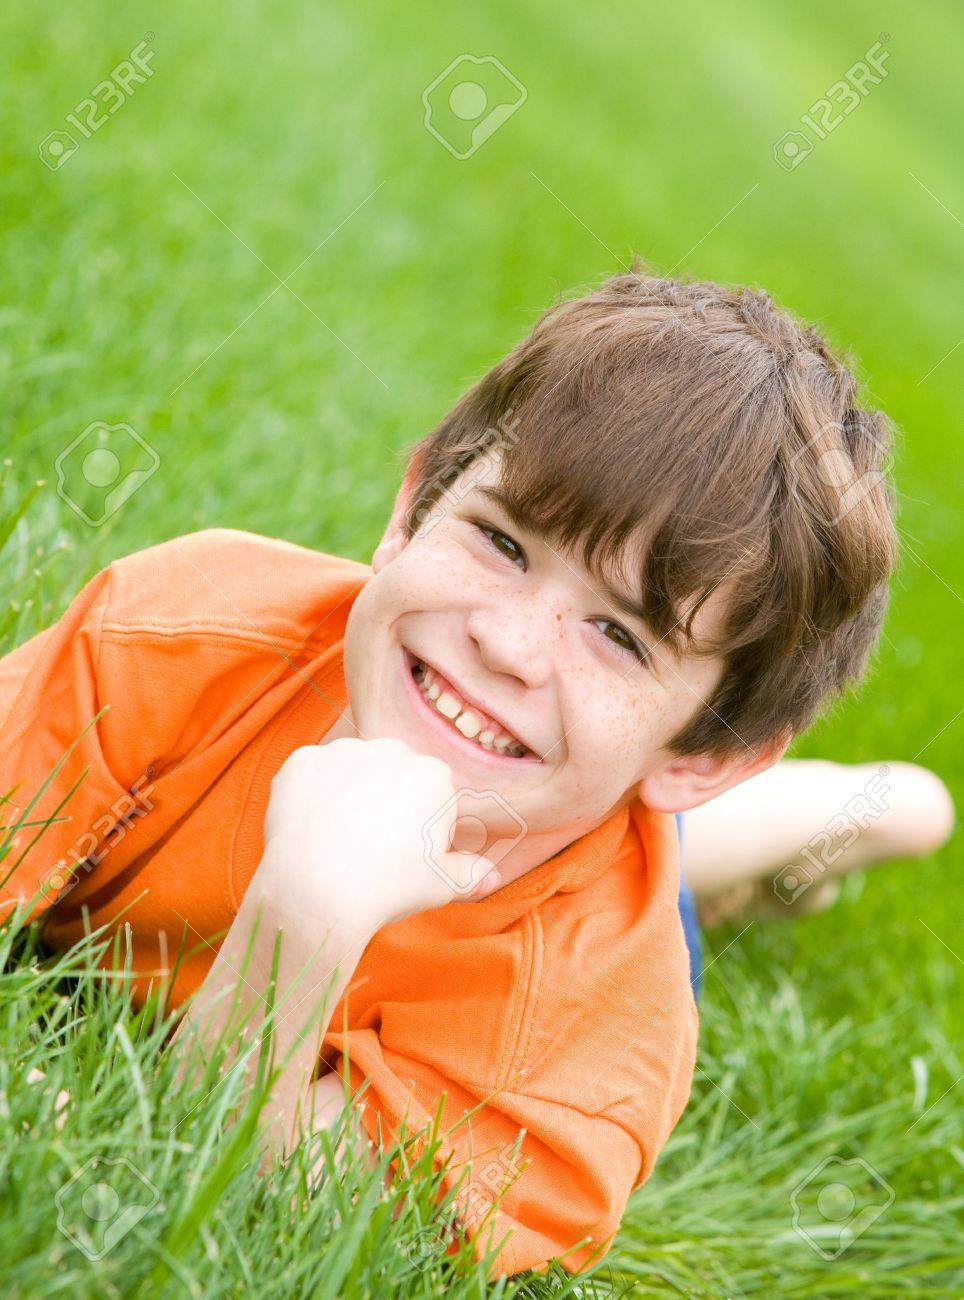 Cute Boy Laying in the Grass Stock Photo - 2949562